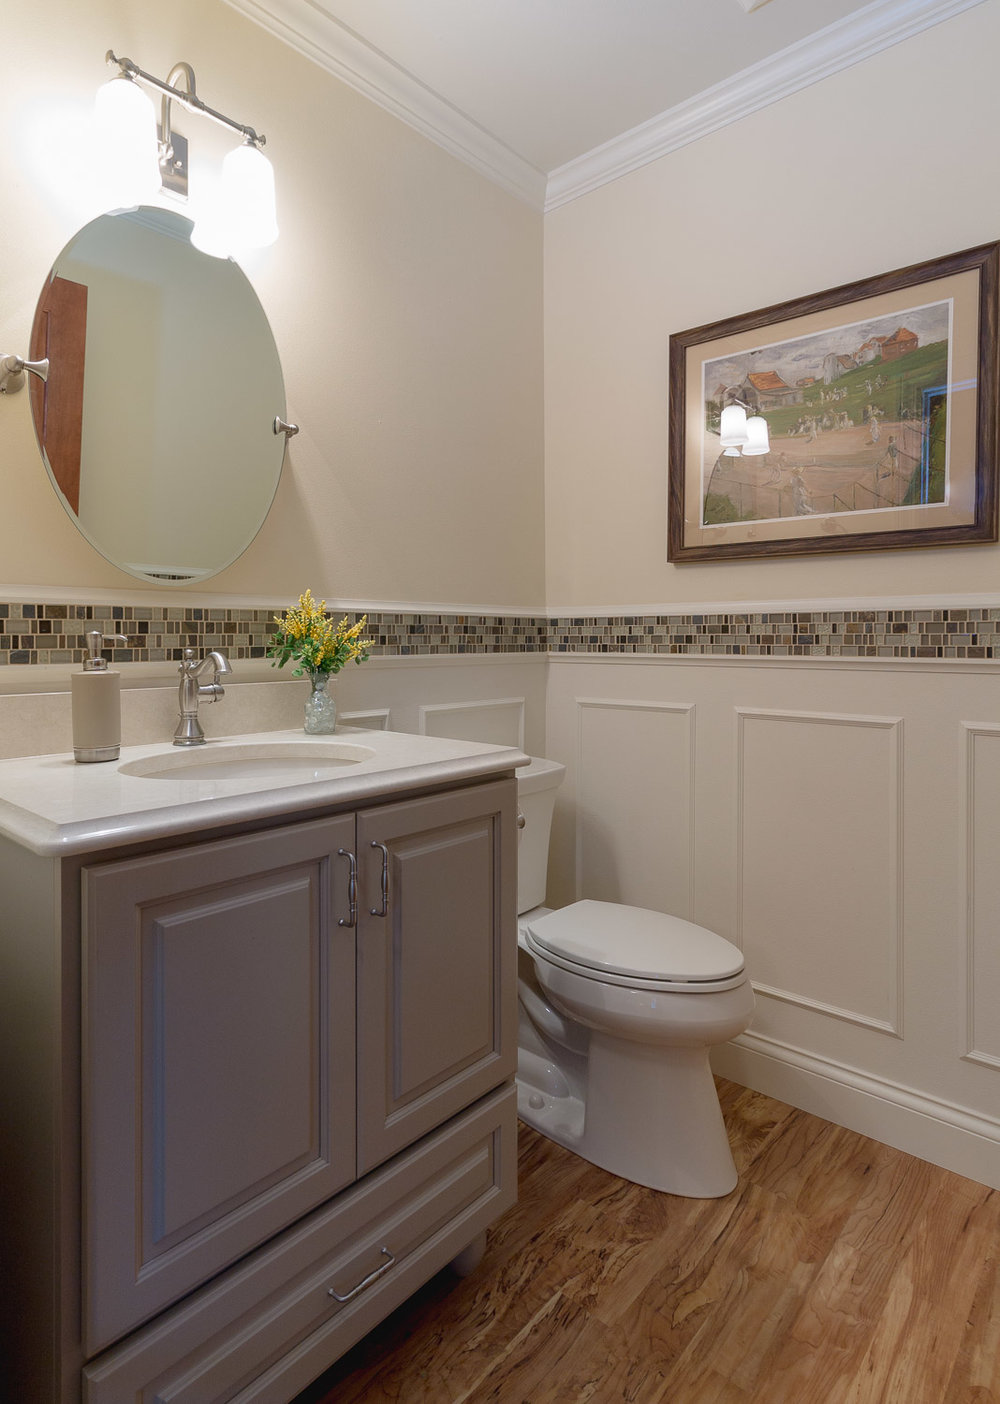 - This free standing, furniture style powder room vanity has bun feet and integrates with wainscot design.